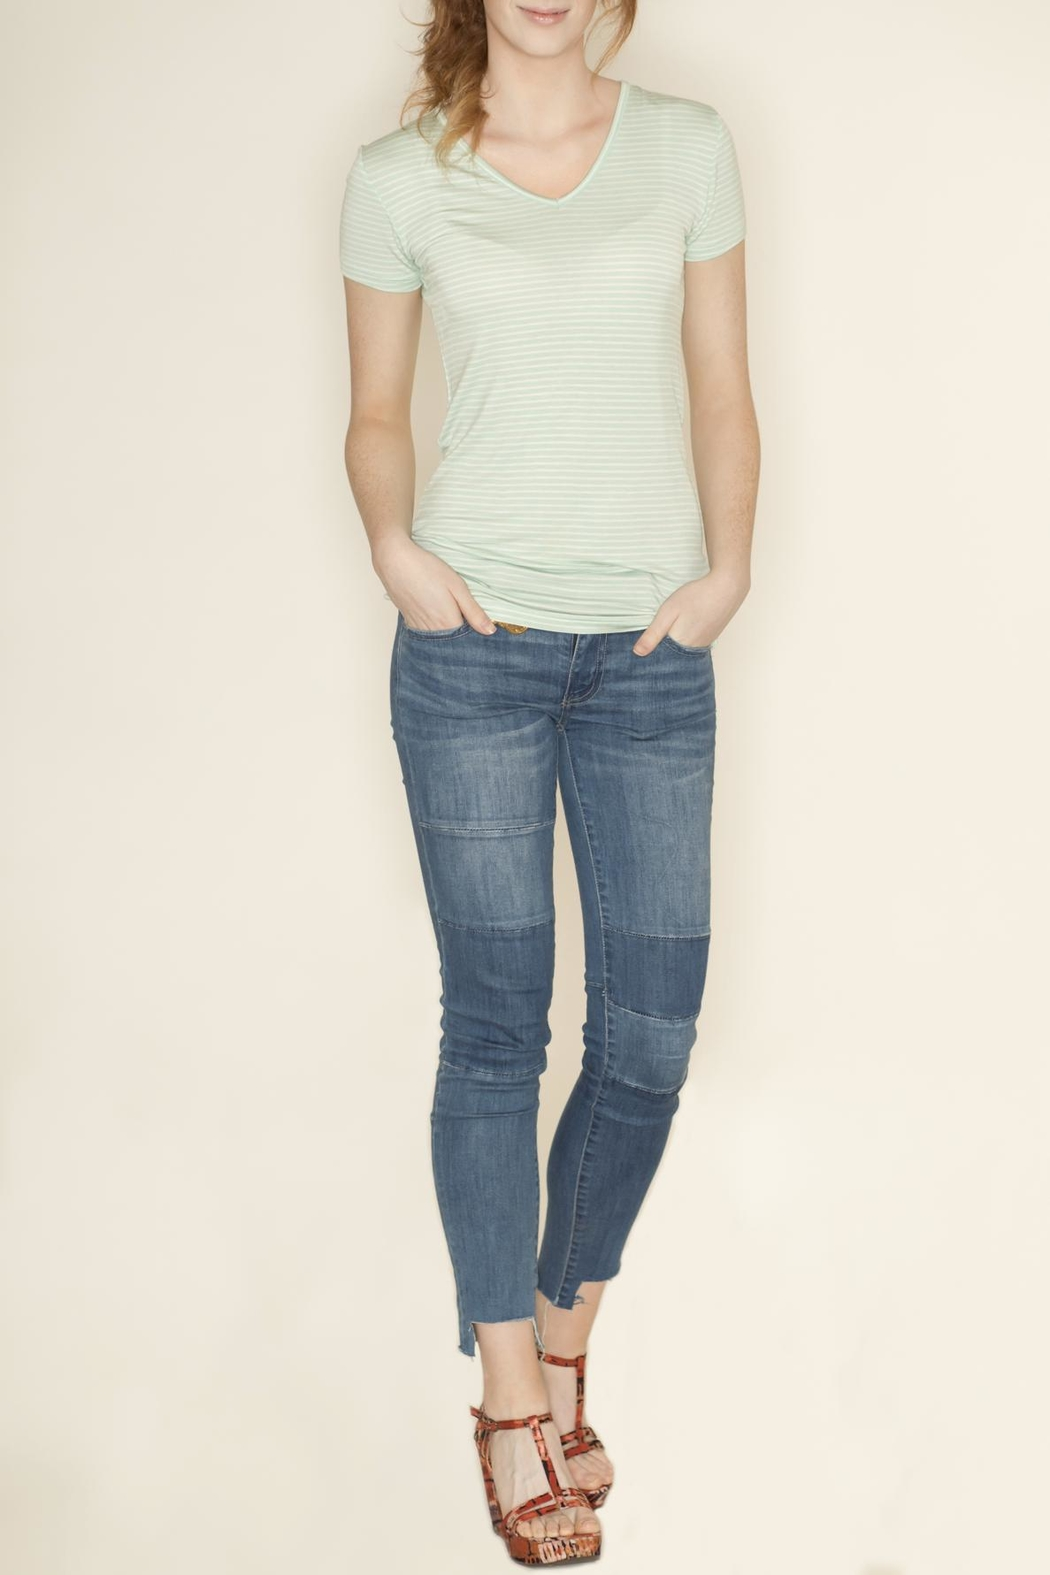 Zenana Outfitters V Neck Pinstripe Tee - Front Full Image